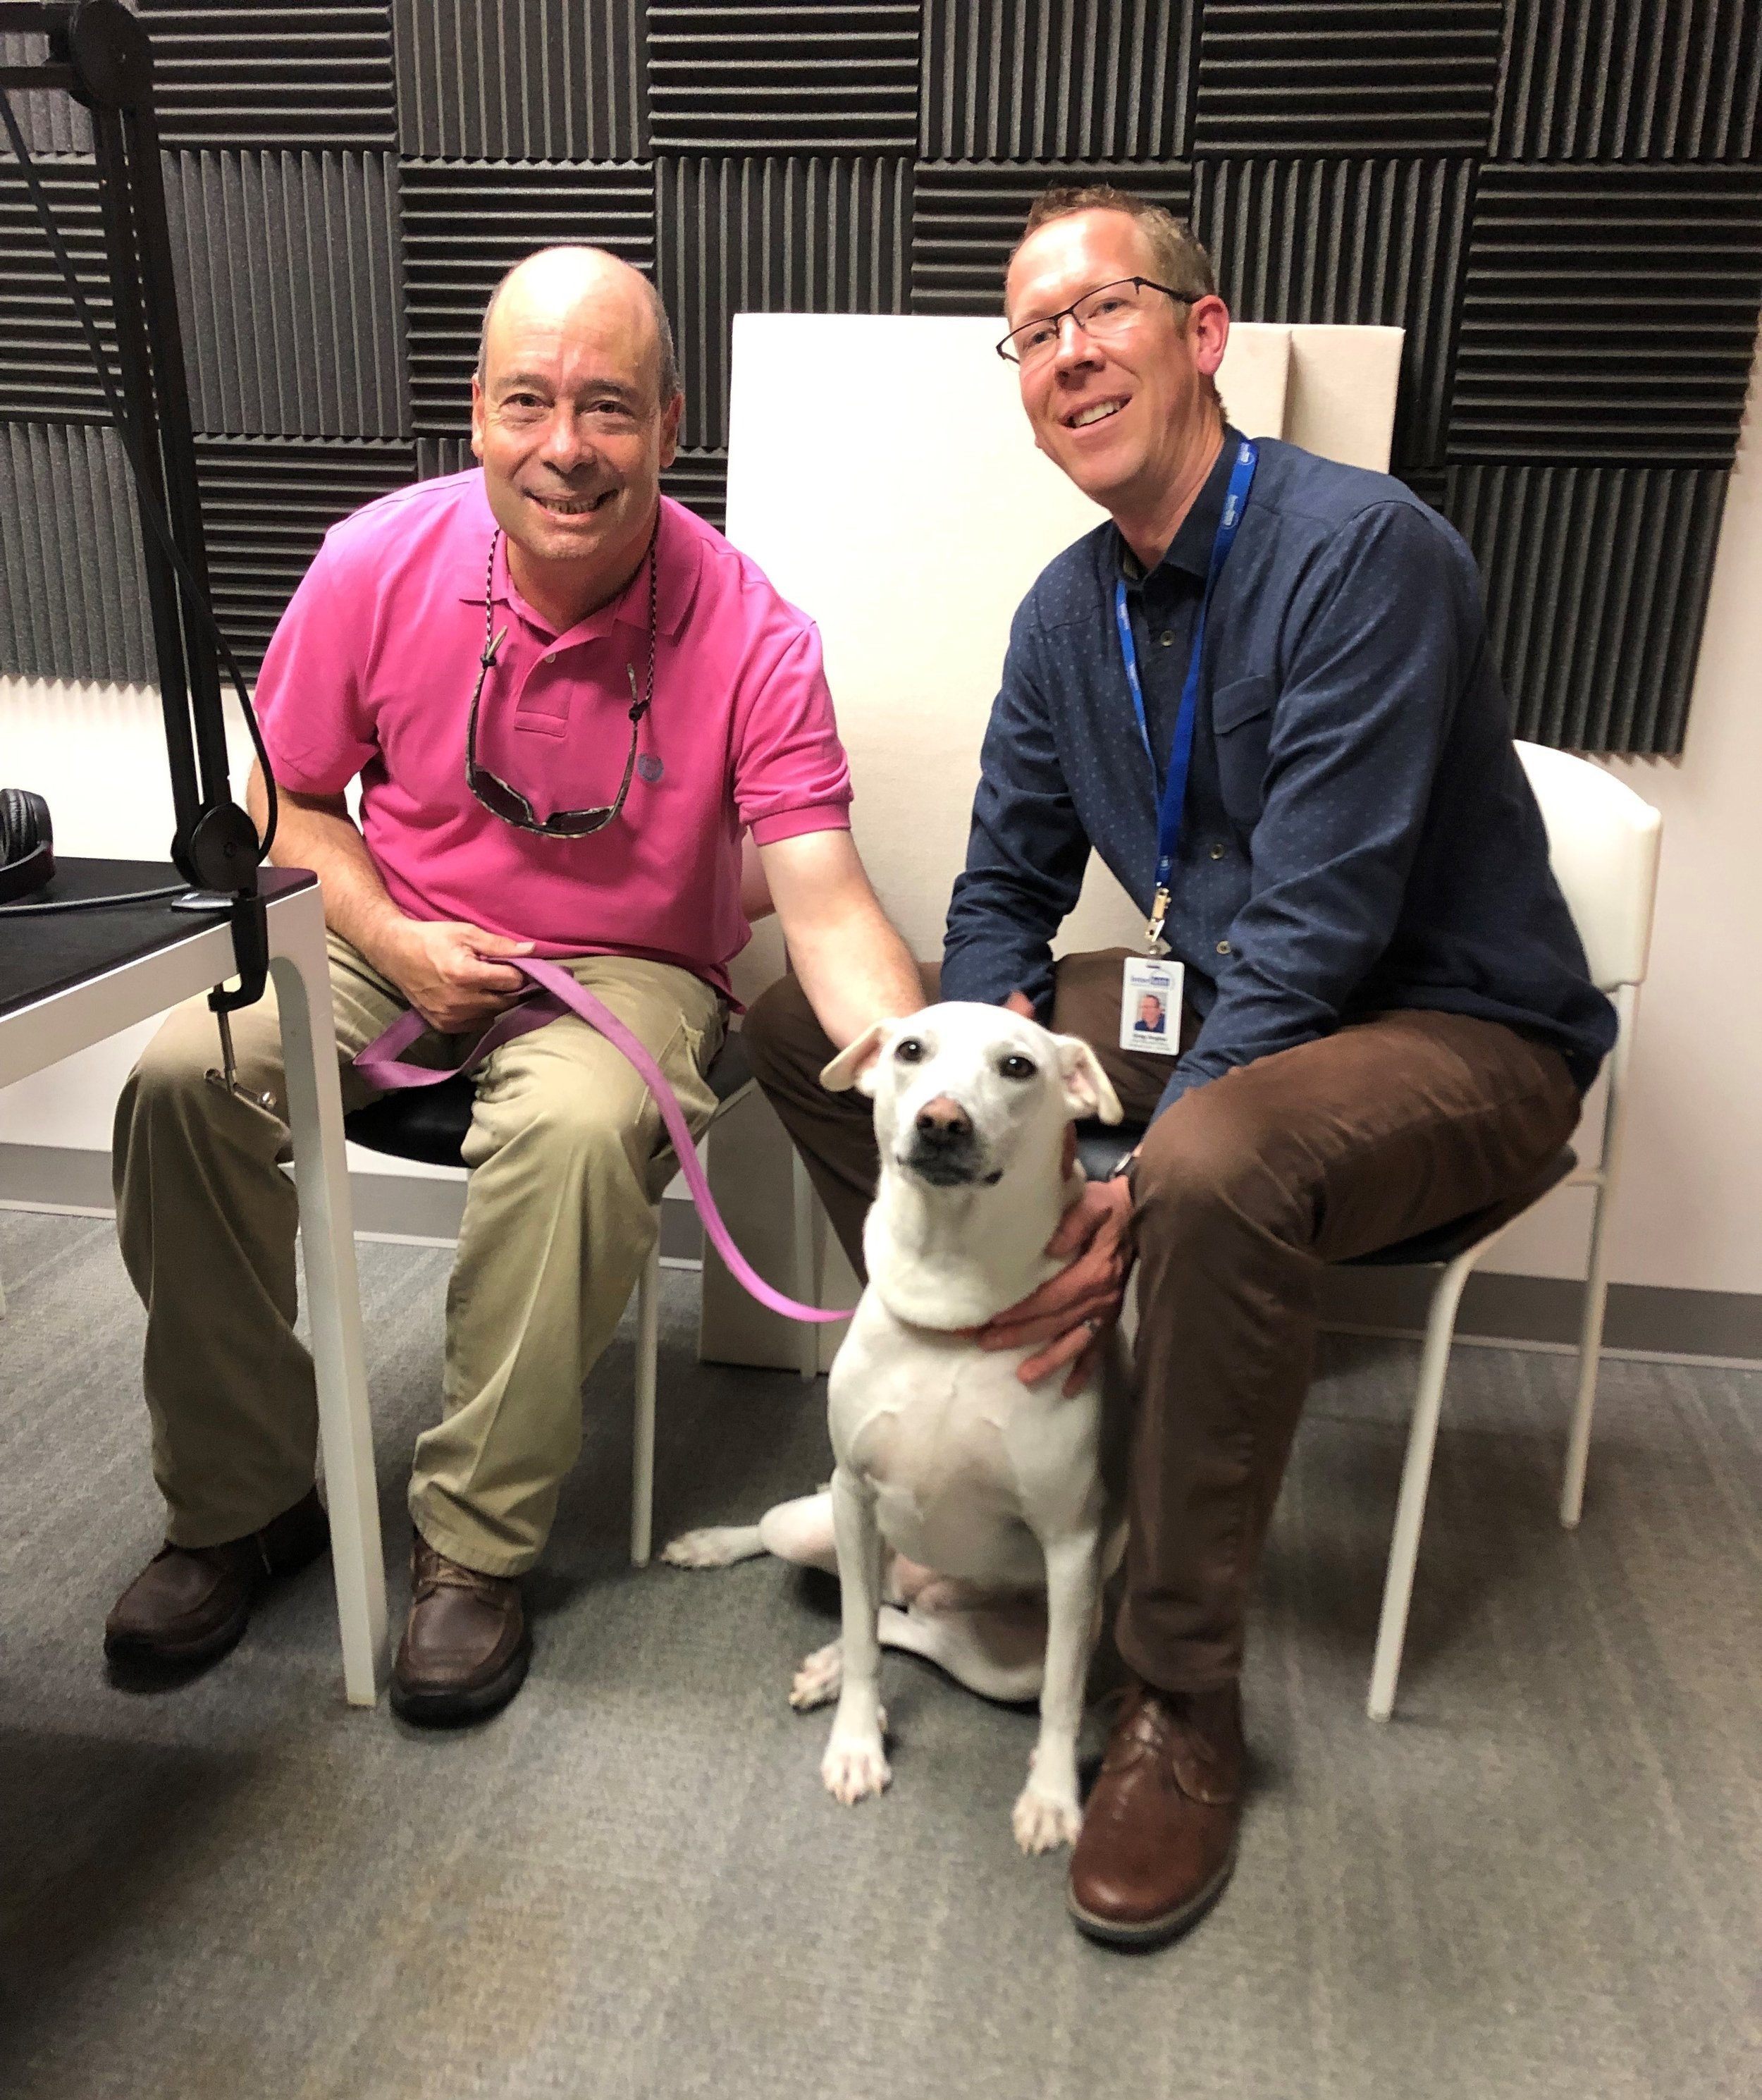 Greg, Brian, and Blondie in the podcast studio.